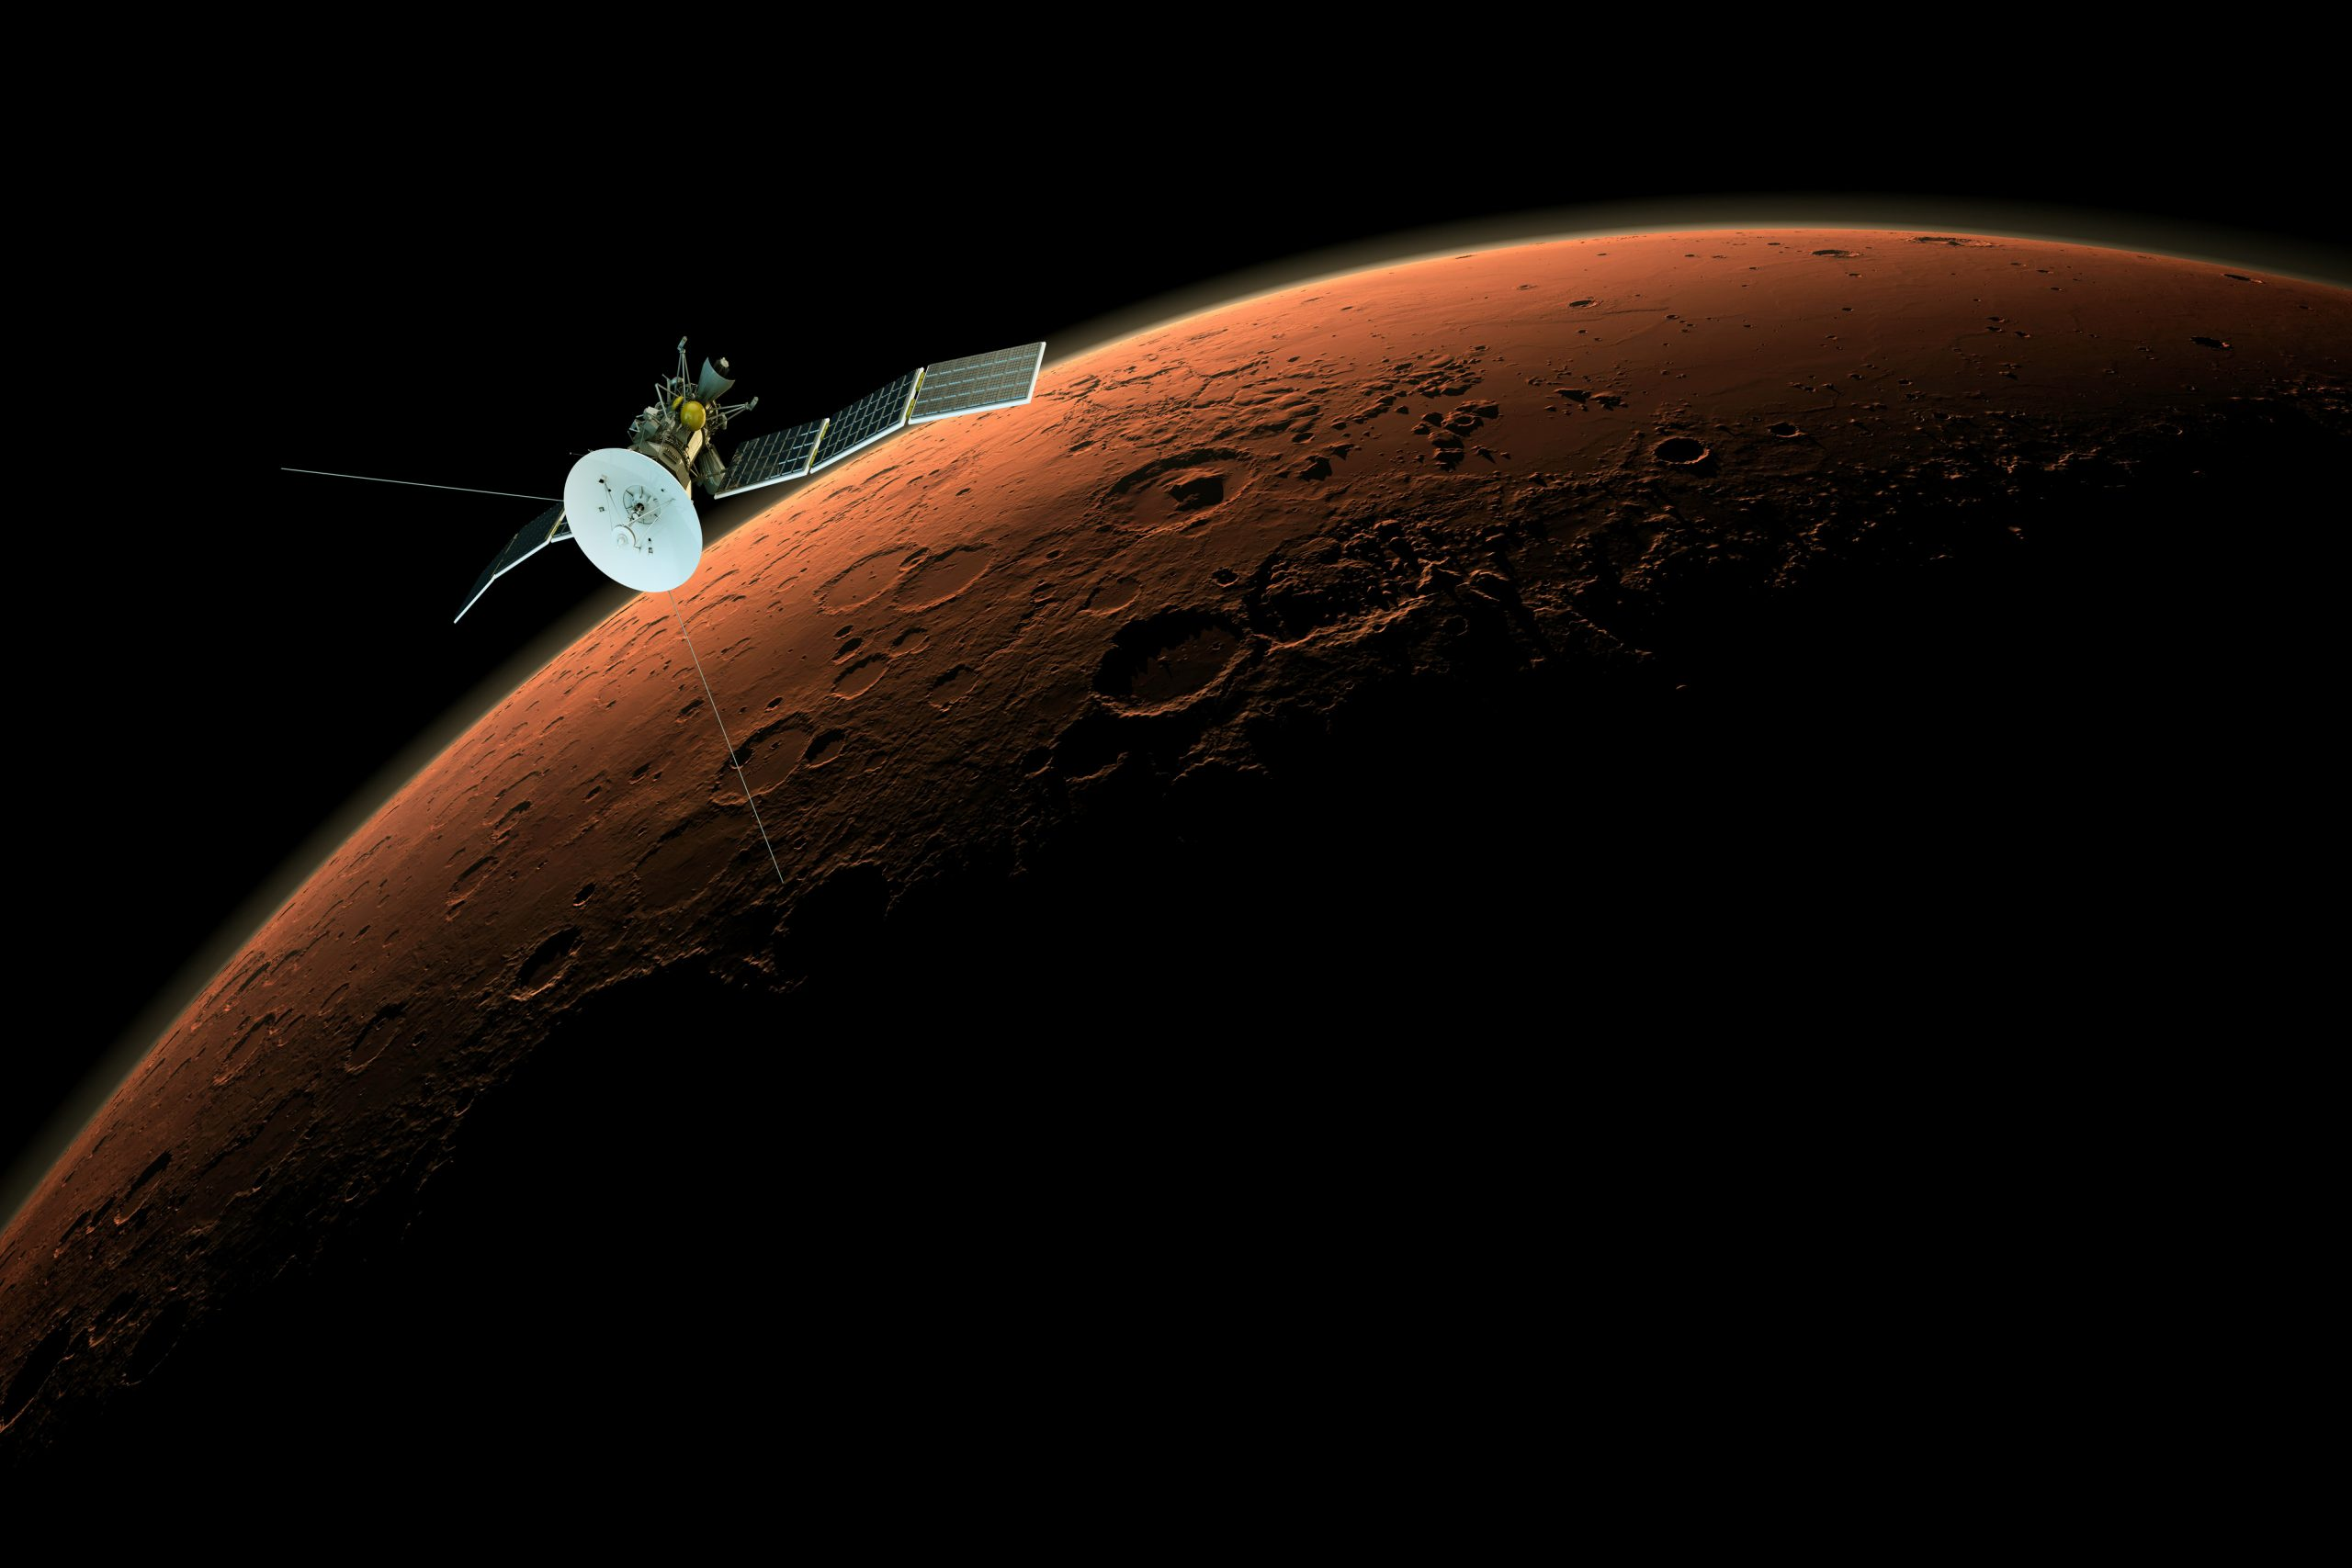 "modern satellite orbiting over mars ""Elements of this image furnished by NASA"""